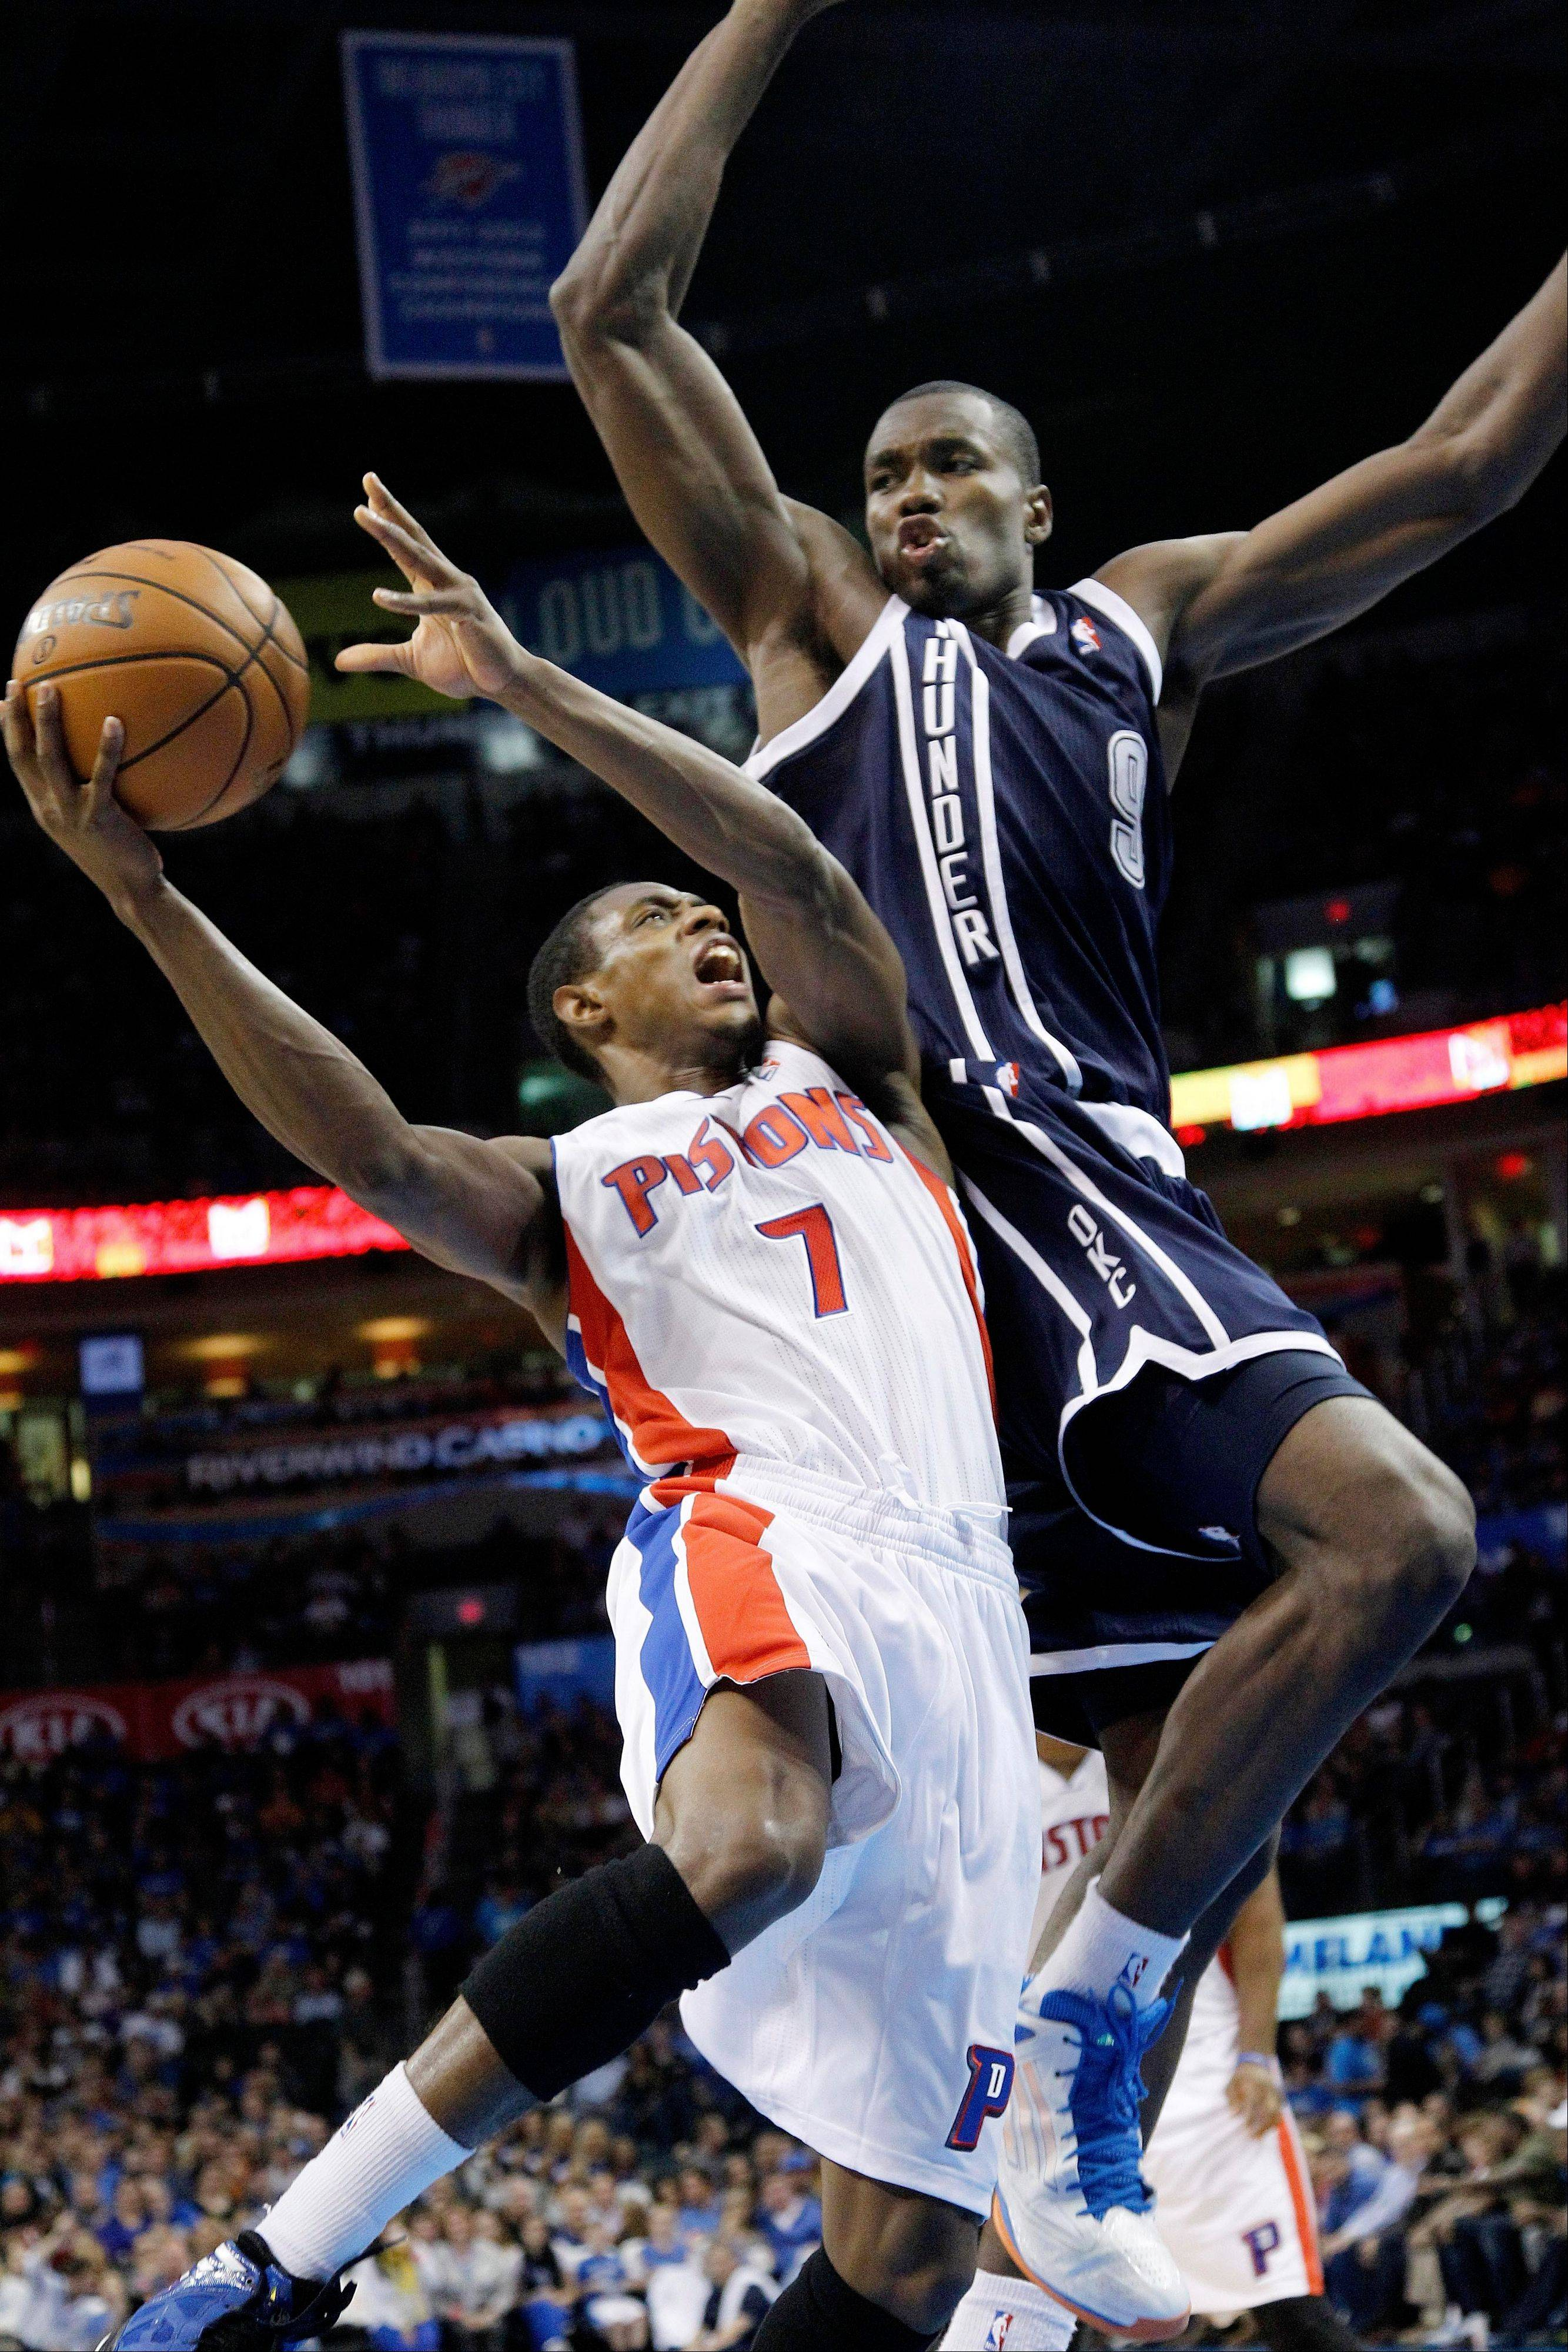 Detroit Pistons guard Brandon Knight (7) is fouled by Oklahoma City Thunder forward Serge Ibaka (9) during the second quarter of an NBA basketball game in Oklahoma City, Friday, Nov. 9, 2012.